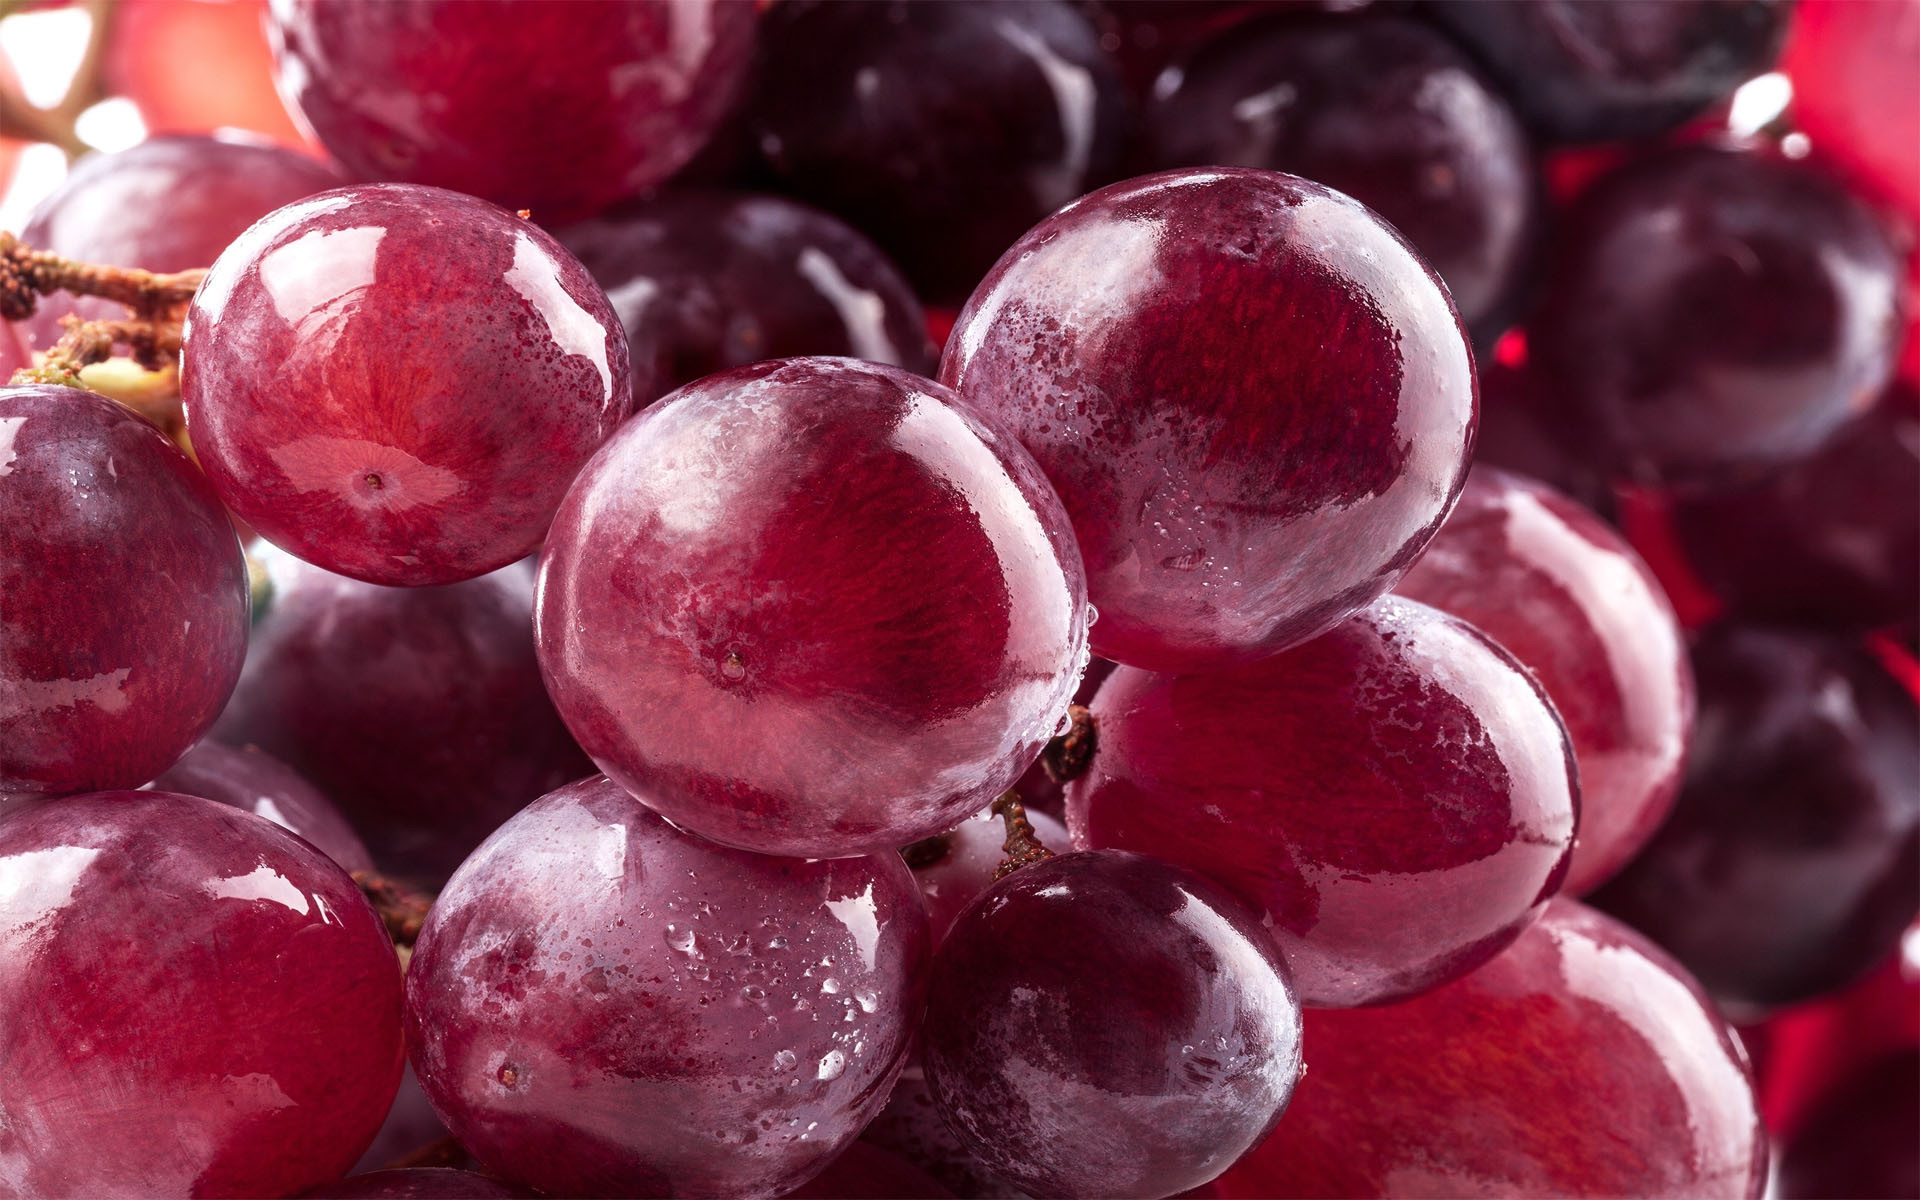 1920x1200 Ripe & shiny grapes HD wallpaper